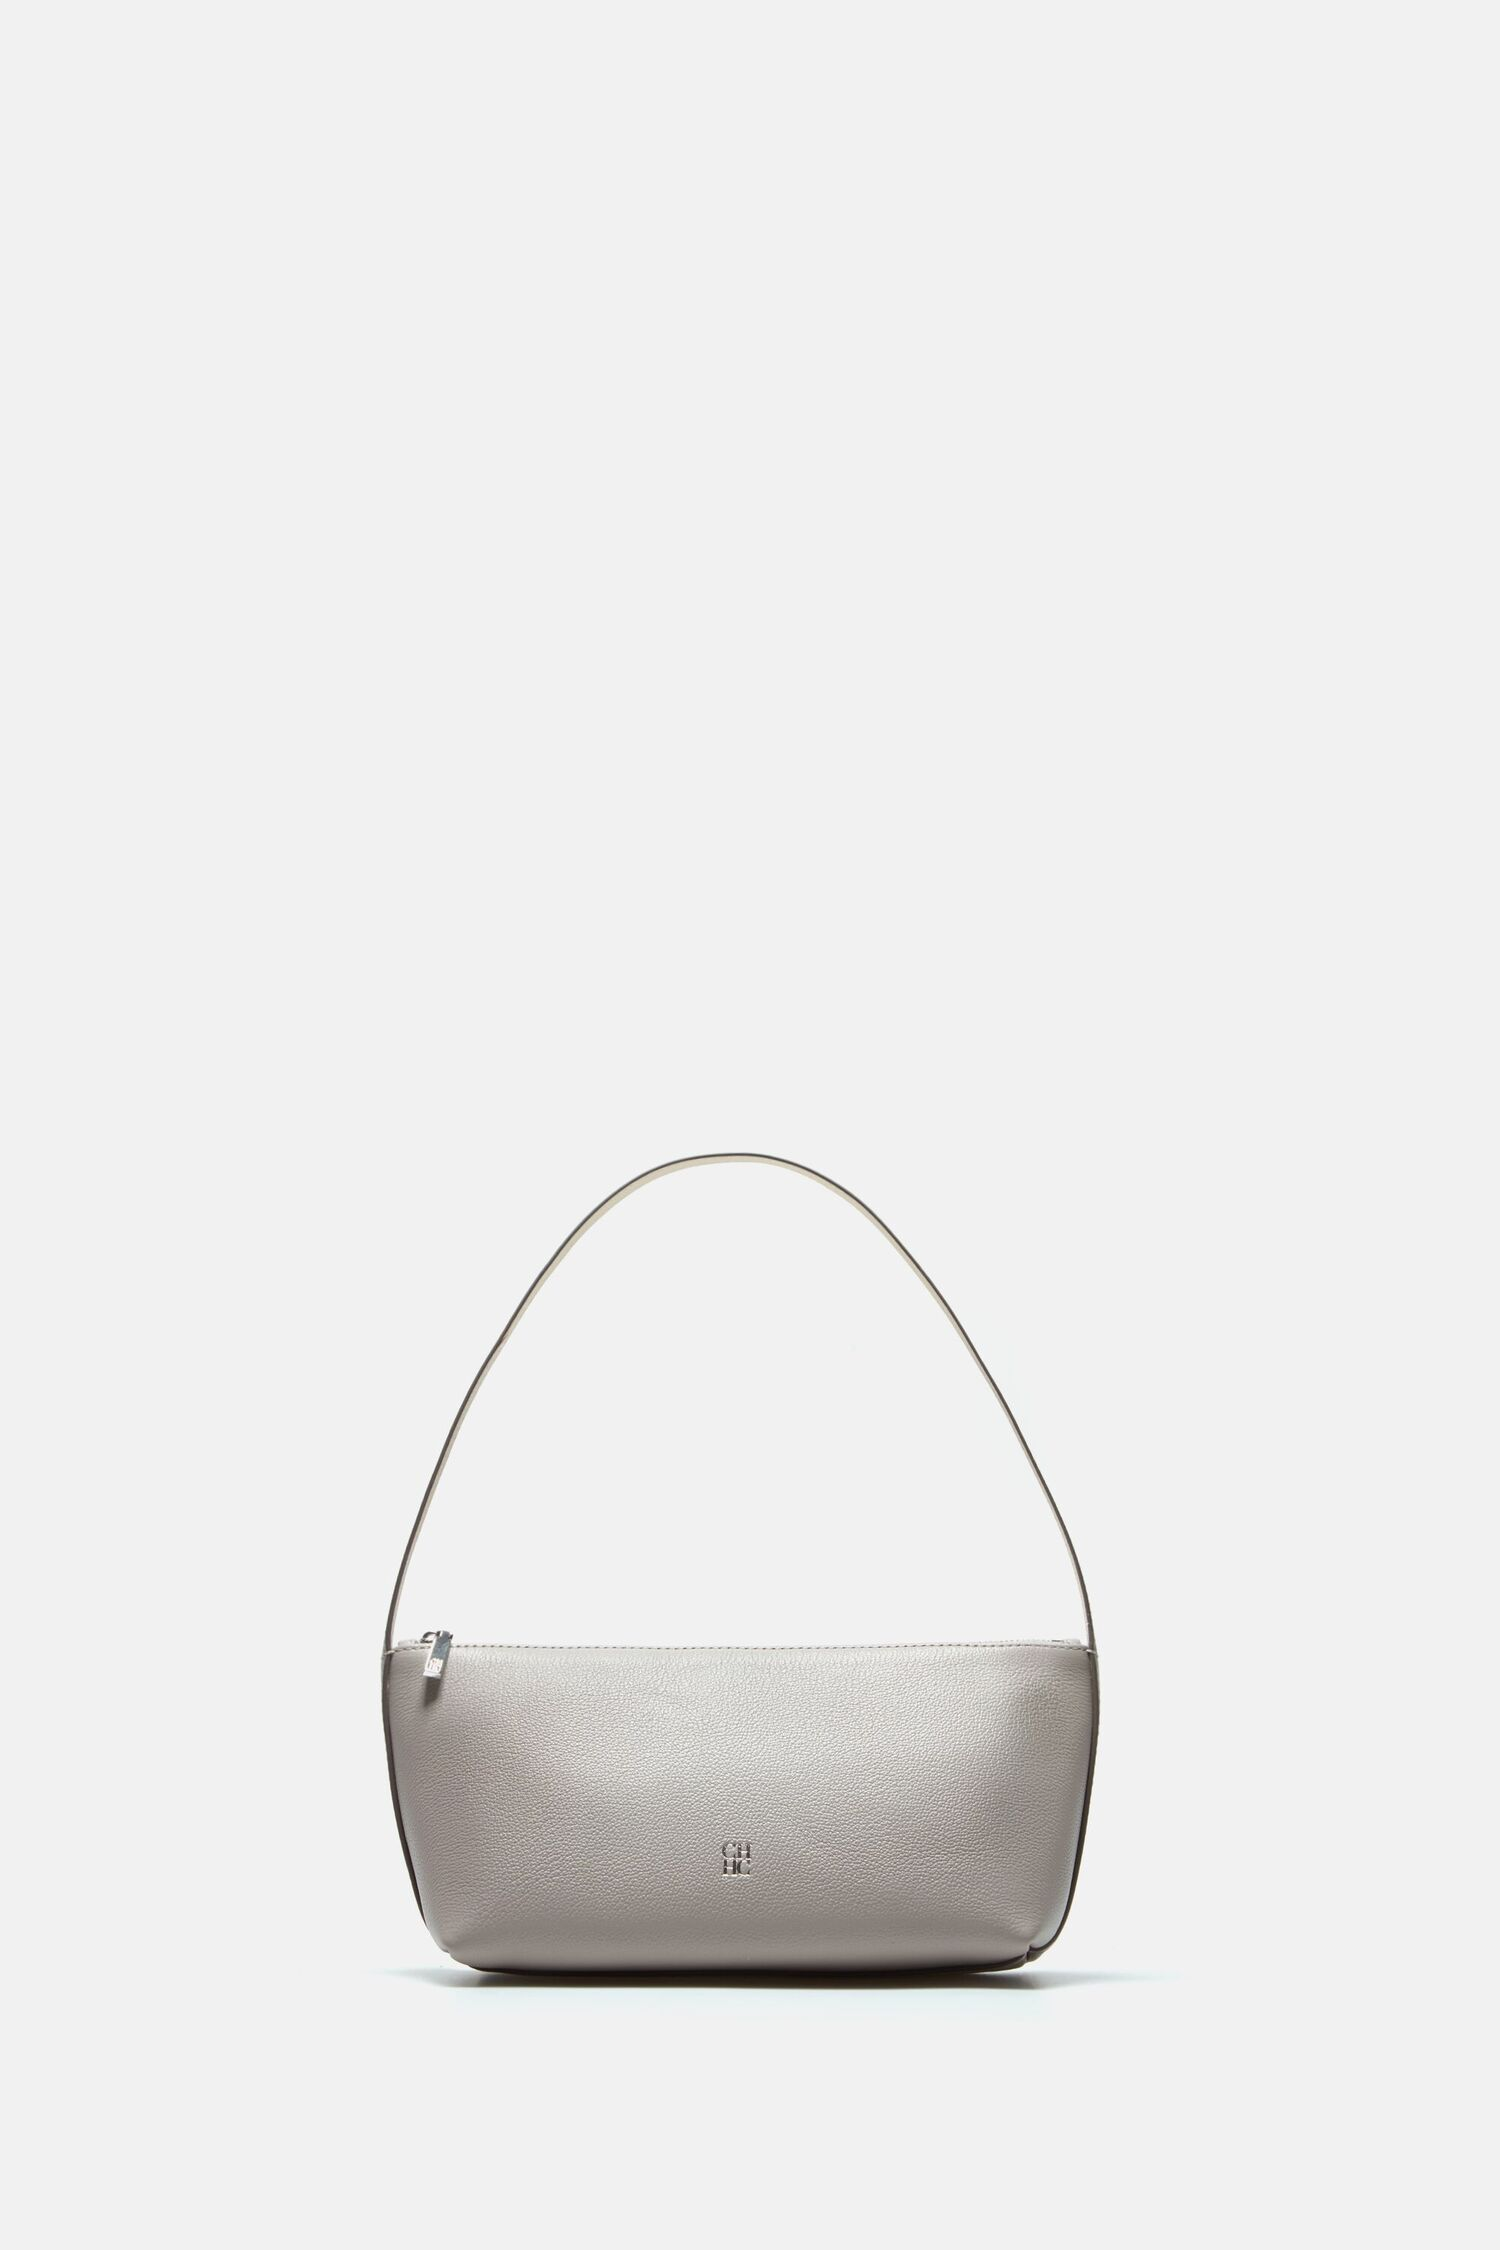 Lipstick | Small shoulder bag